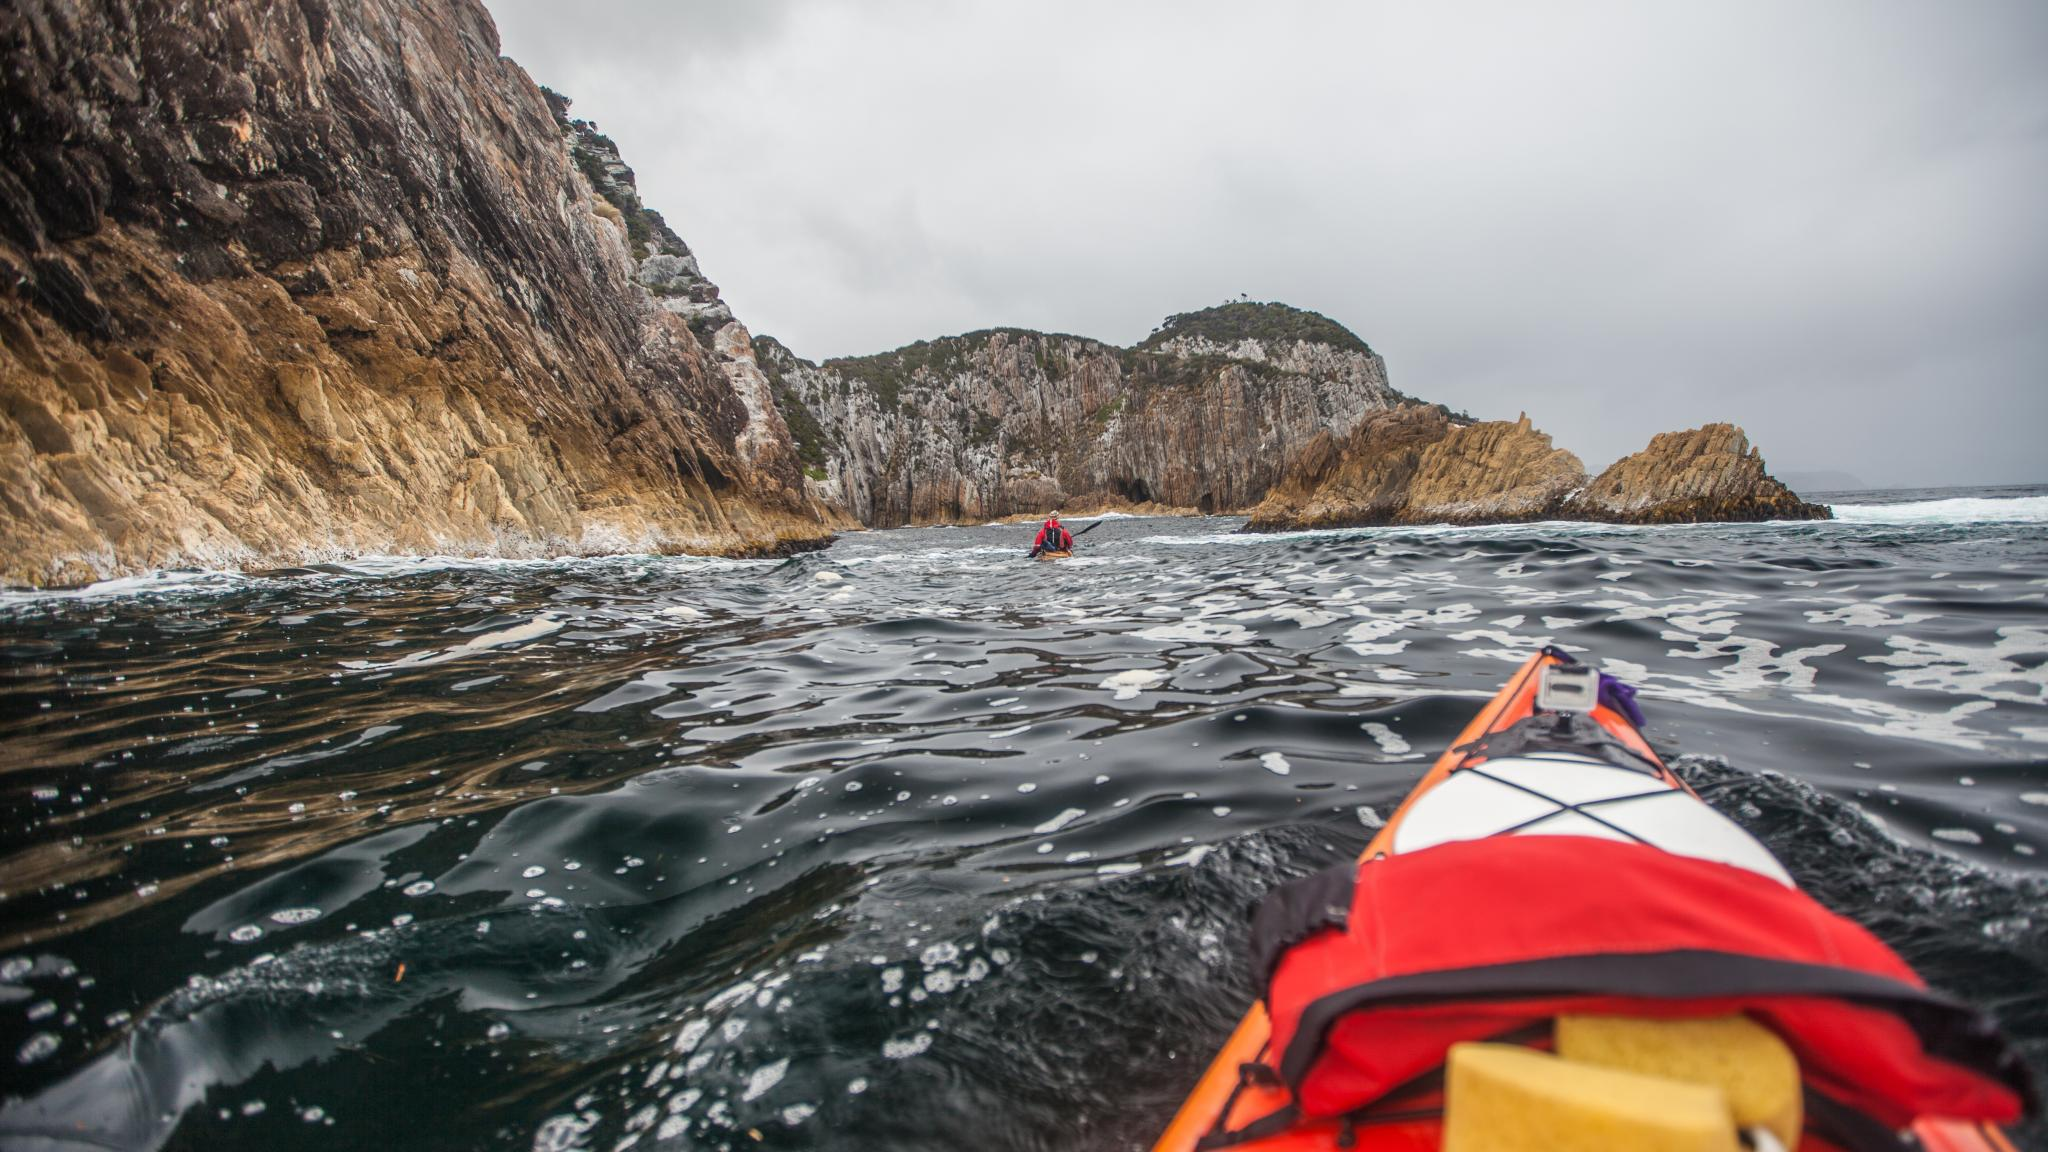 Roaring 40s Kayaking - Multi day tour Tasmania kayaking Breakseas Islands, Port Davey